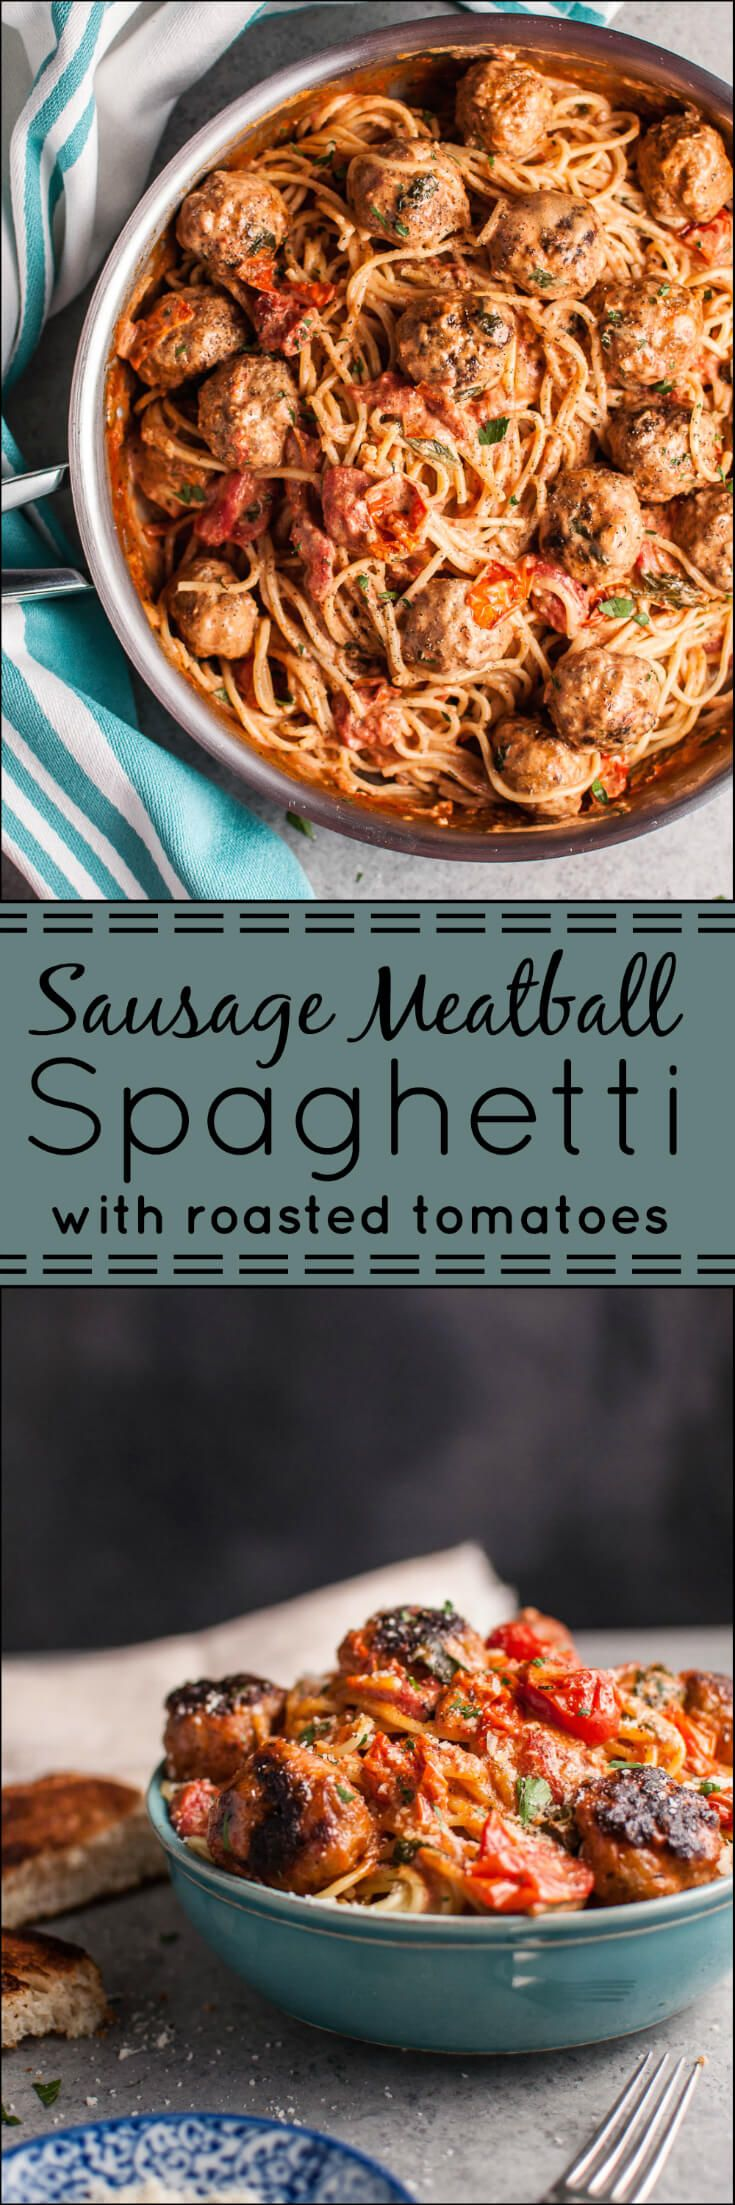 This sausage meatball spaghetti with roasted tomatoes is bursting with fresh…